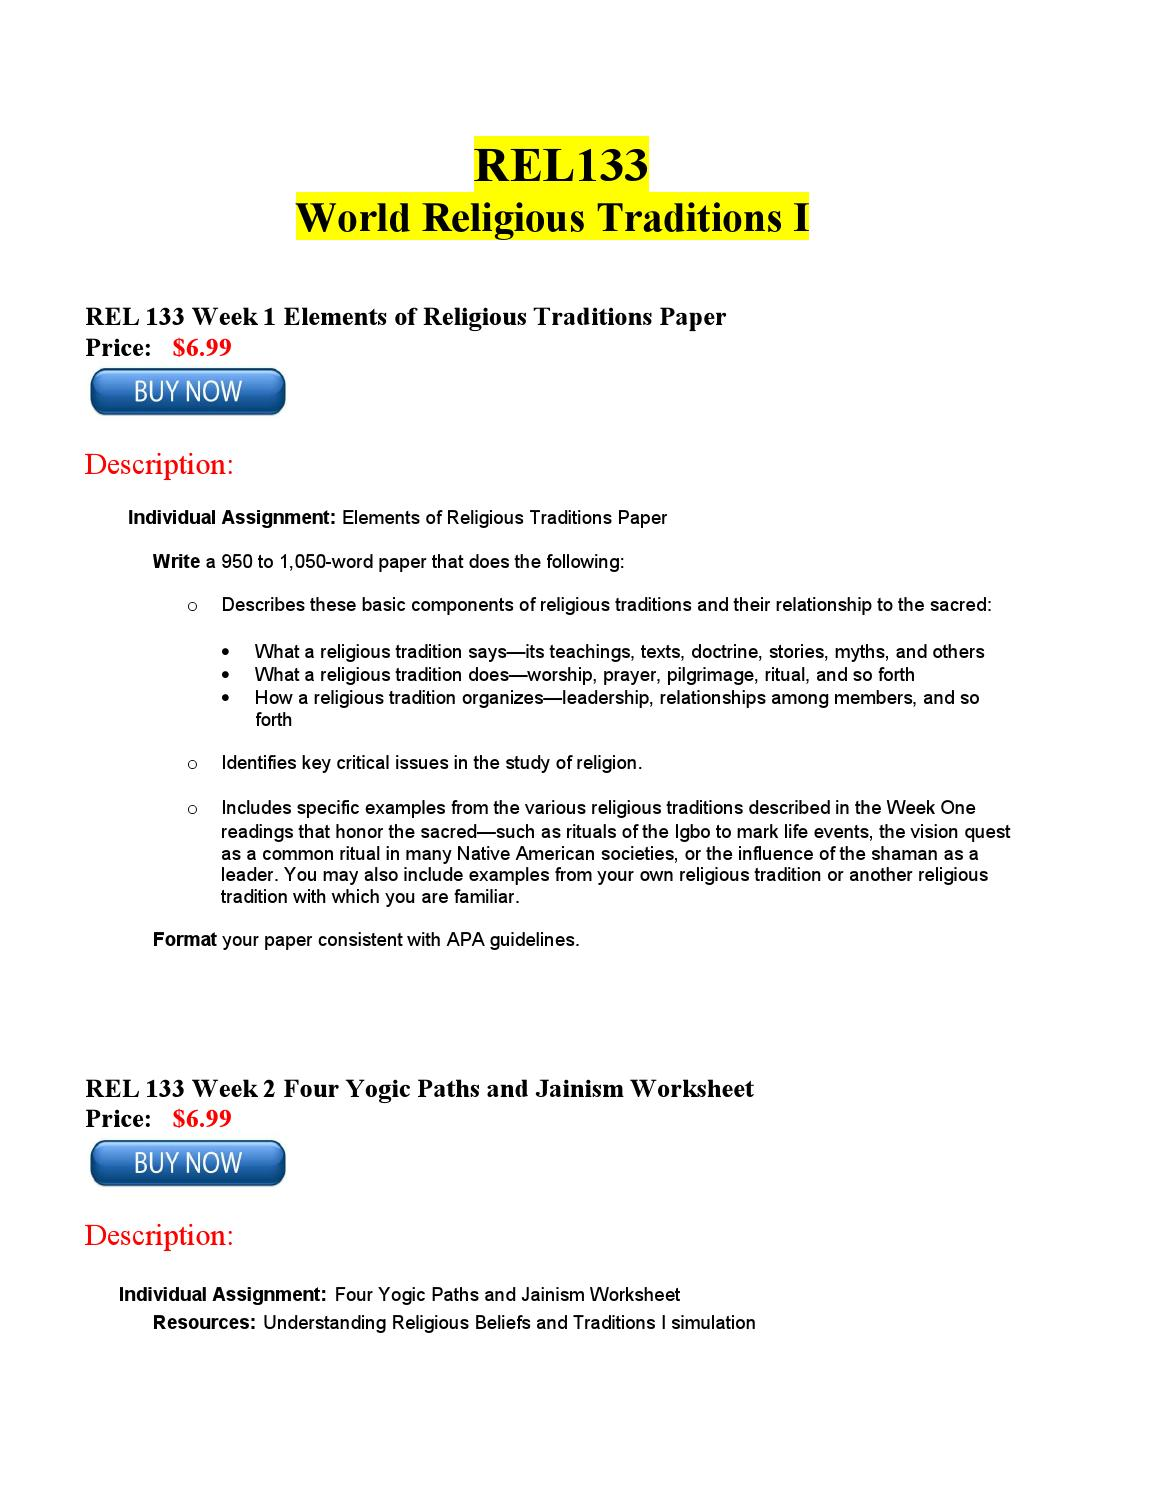 what a religious tradition says its teachings texts doctrine stories myths Write a 700- to 1,050-word paper that does the following: describes these basic components of religious traditions and their relationship to the sacred: what a religious tradition says—its teachings, texts, doctrine, stories, myths, and others what a religious tradition does—worship, prayer.